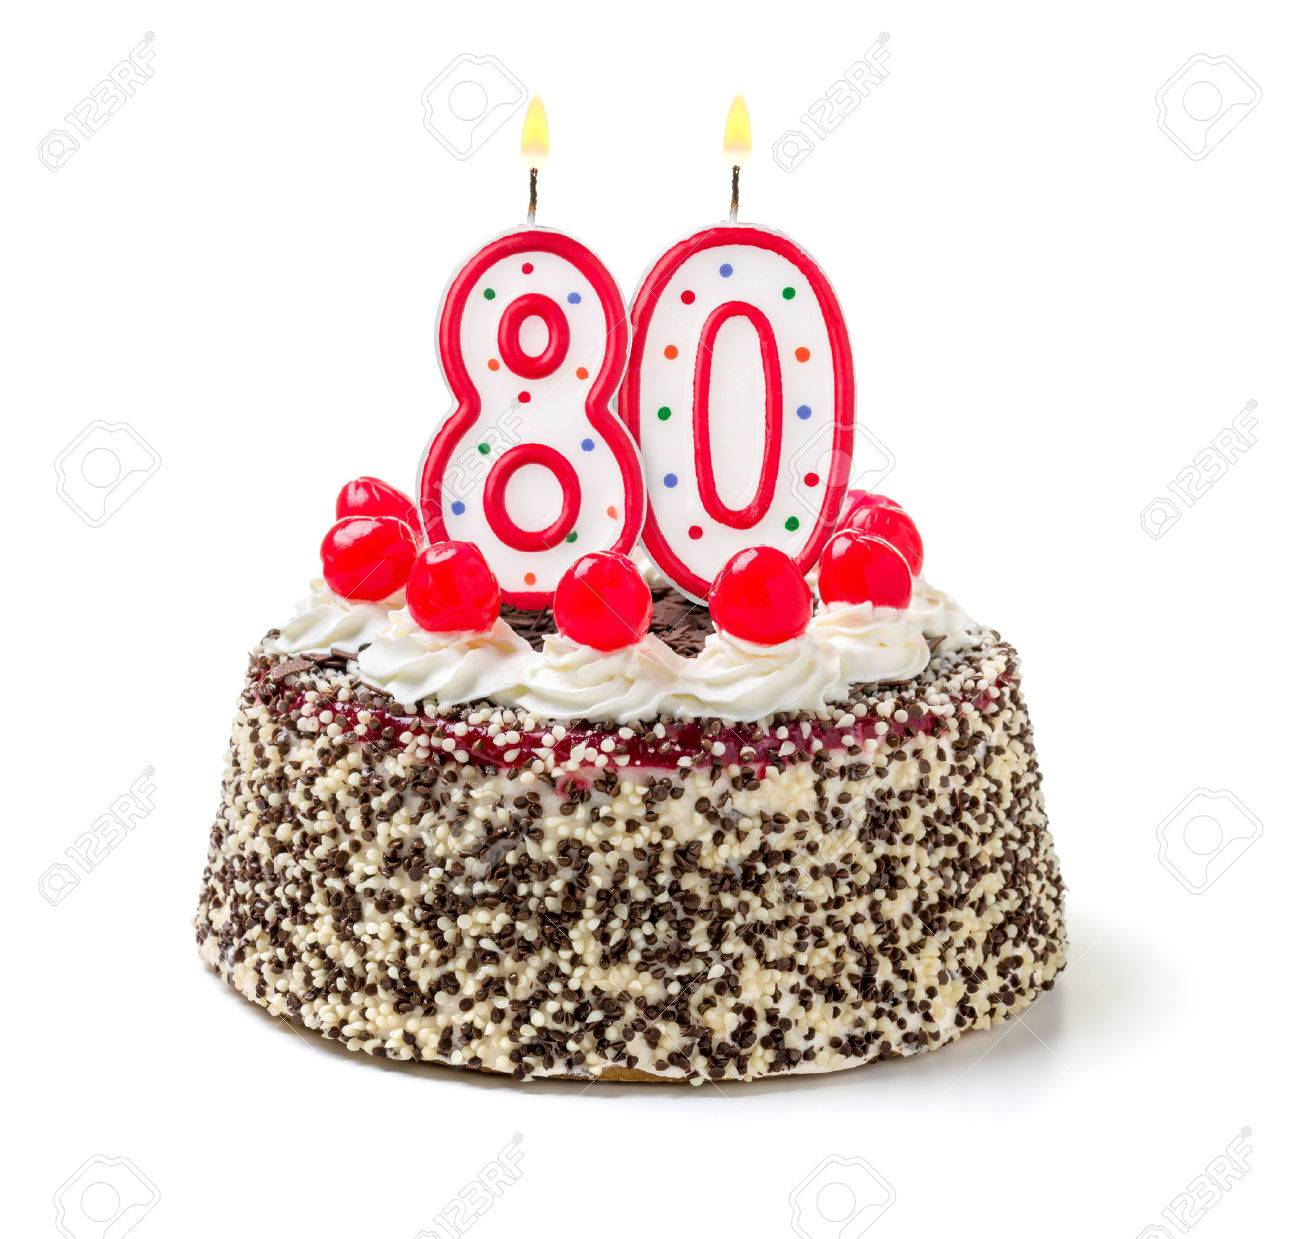 Birthday Cake With Burning Candle Number 80 Stock Photo